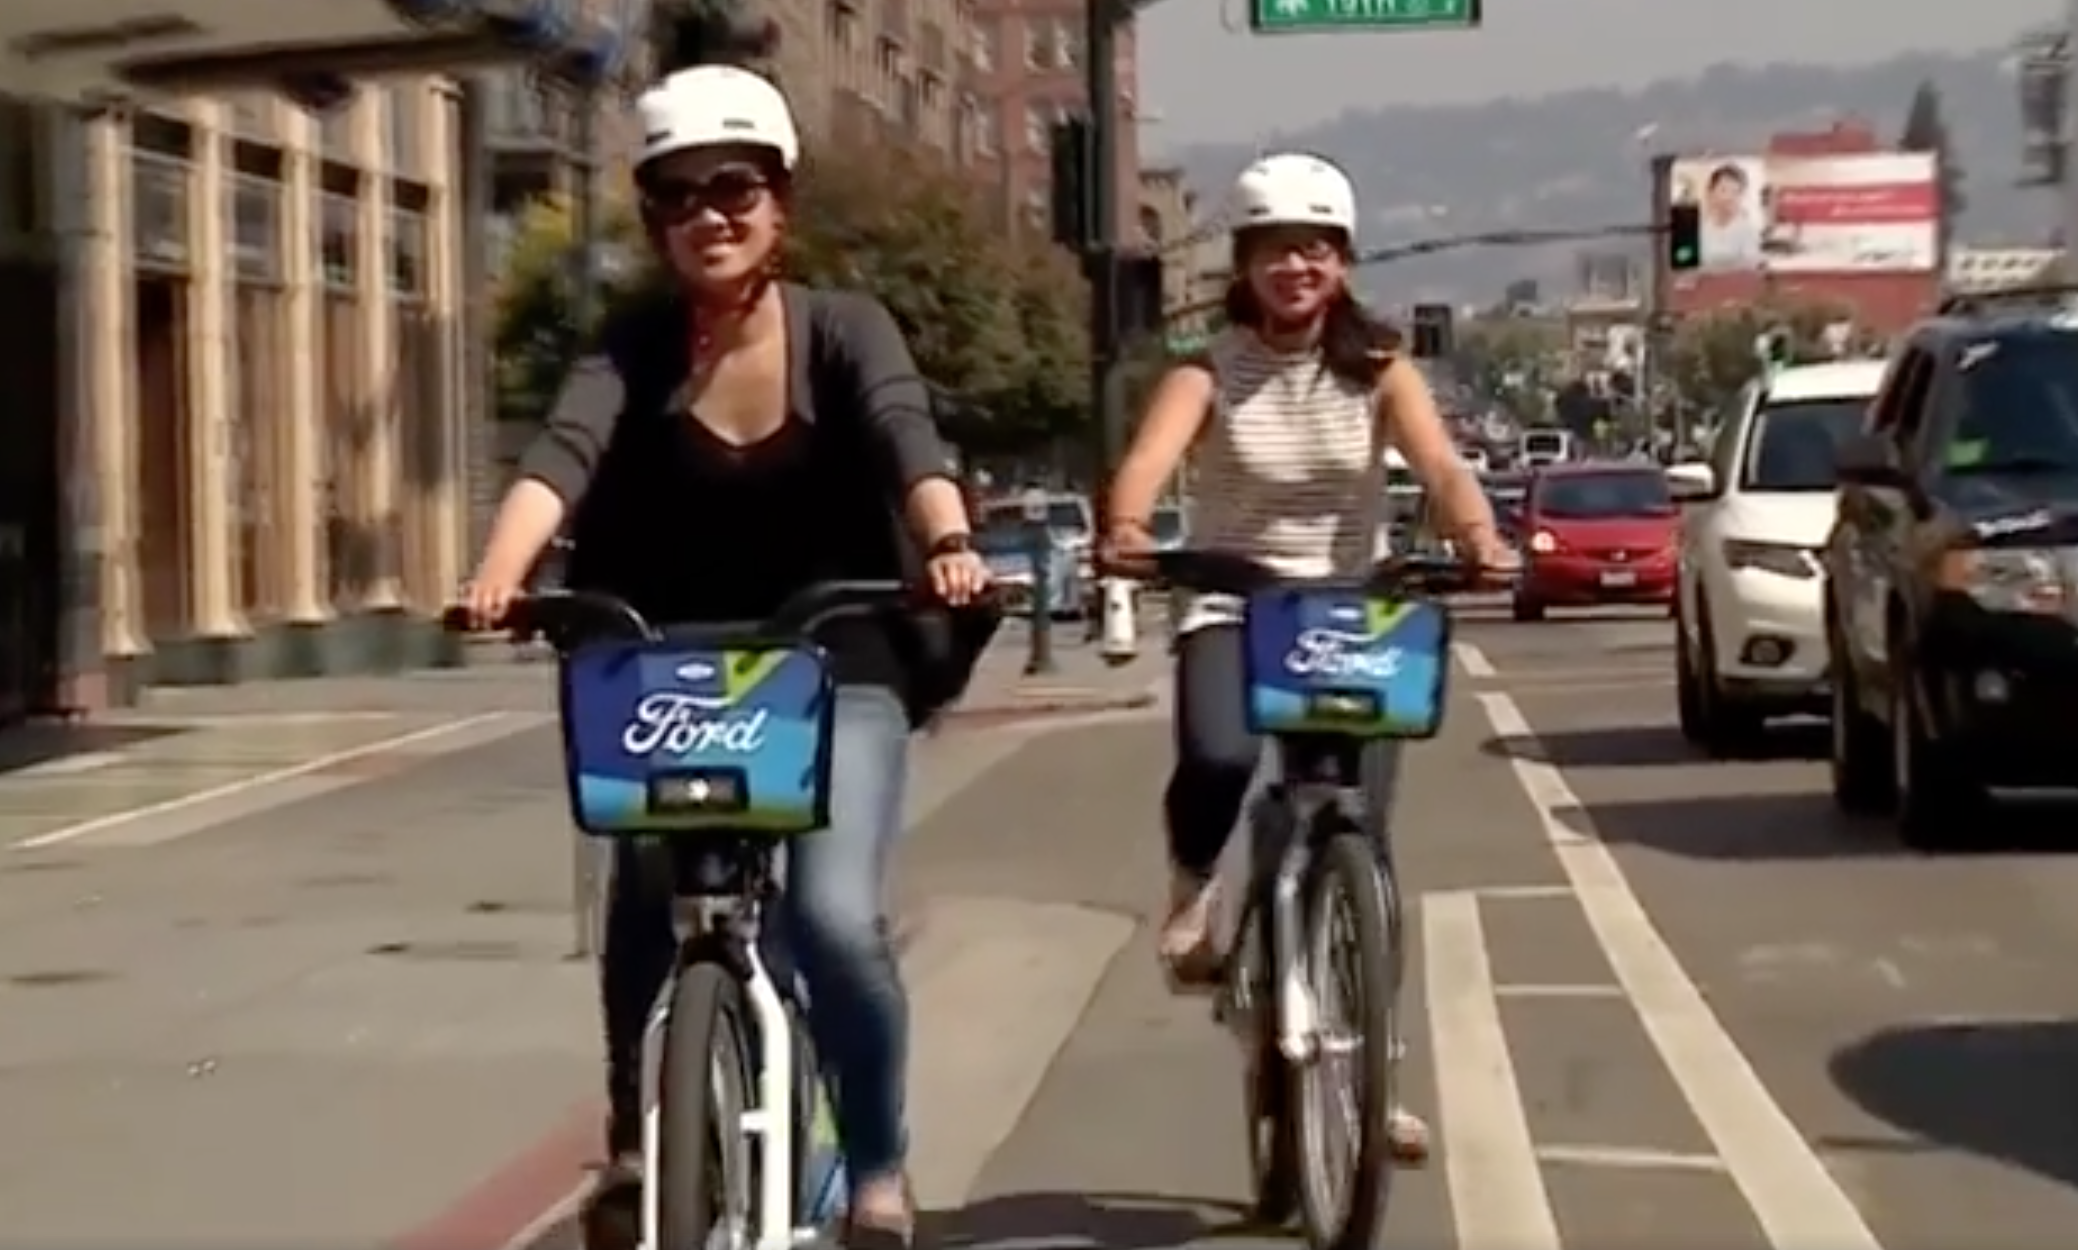 Ford sees all modes of transportation services as its future, even bicycle sharing programs.